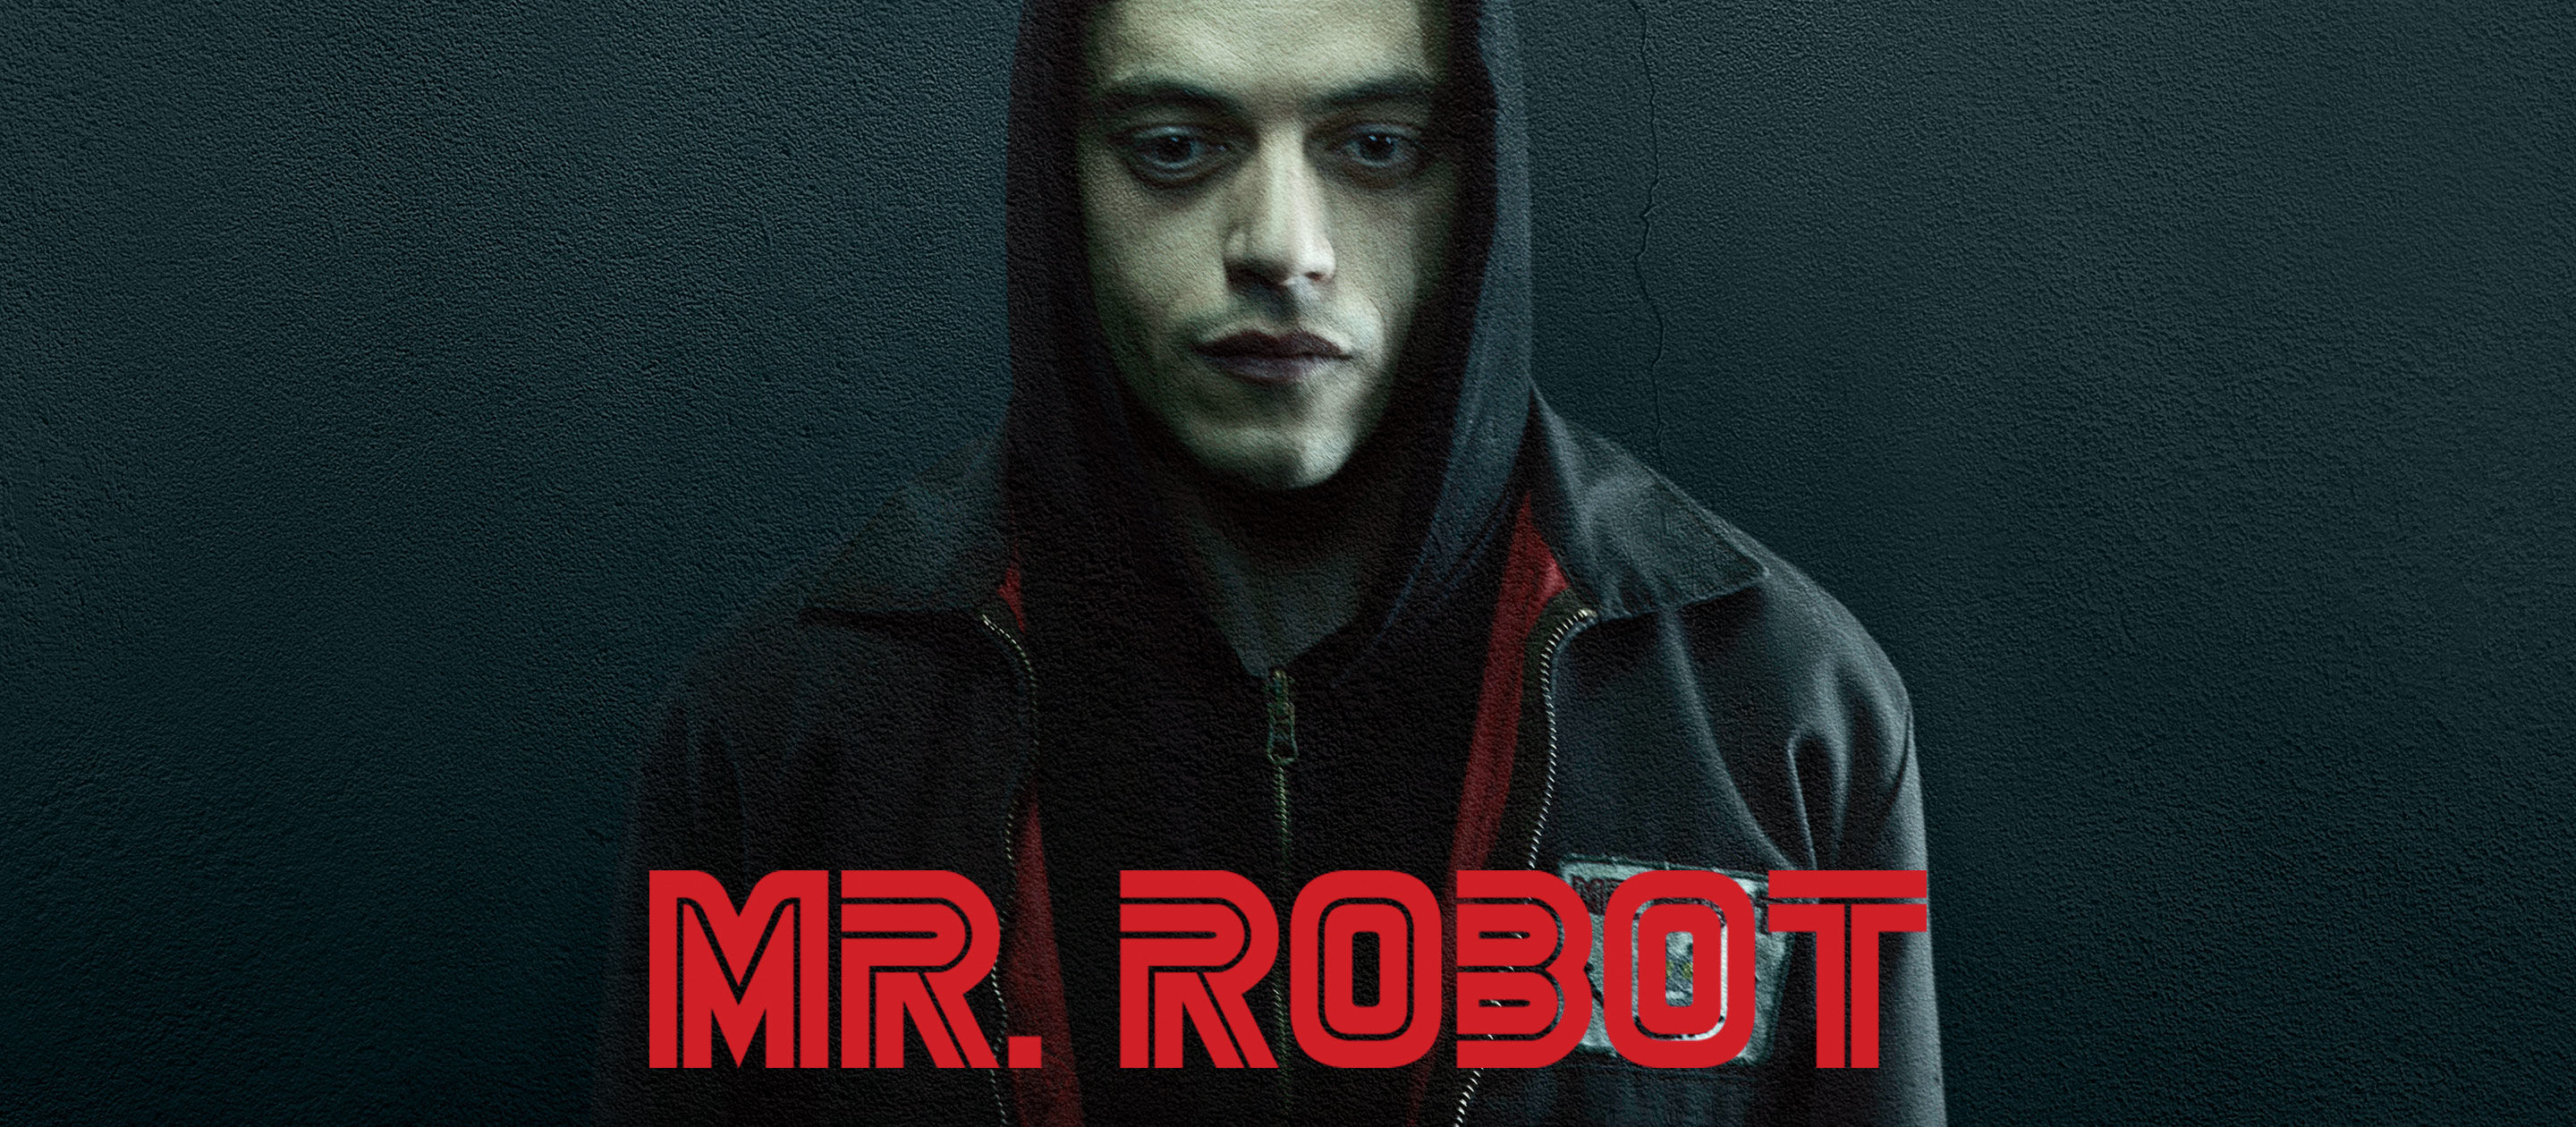 Mr Robot Tv Show 2, HD Tv Shows, 4k Wallpapers, Images ...